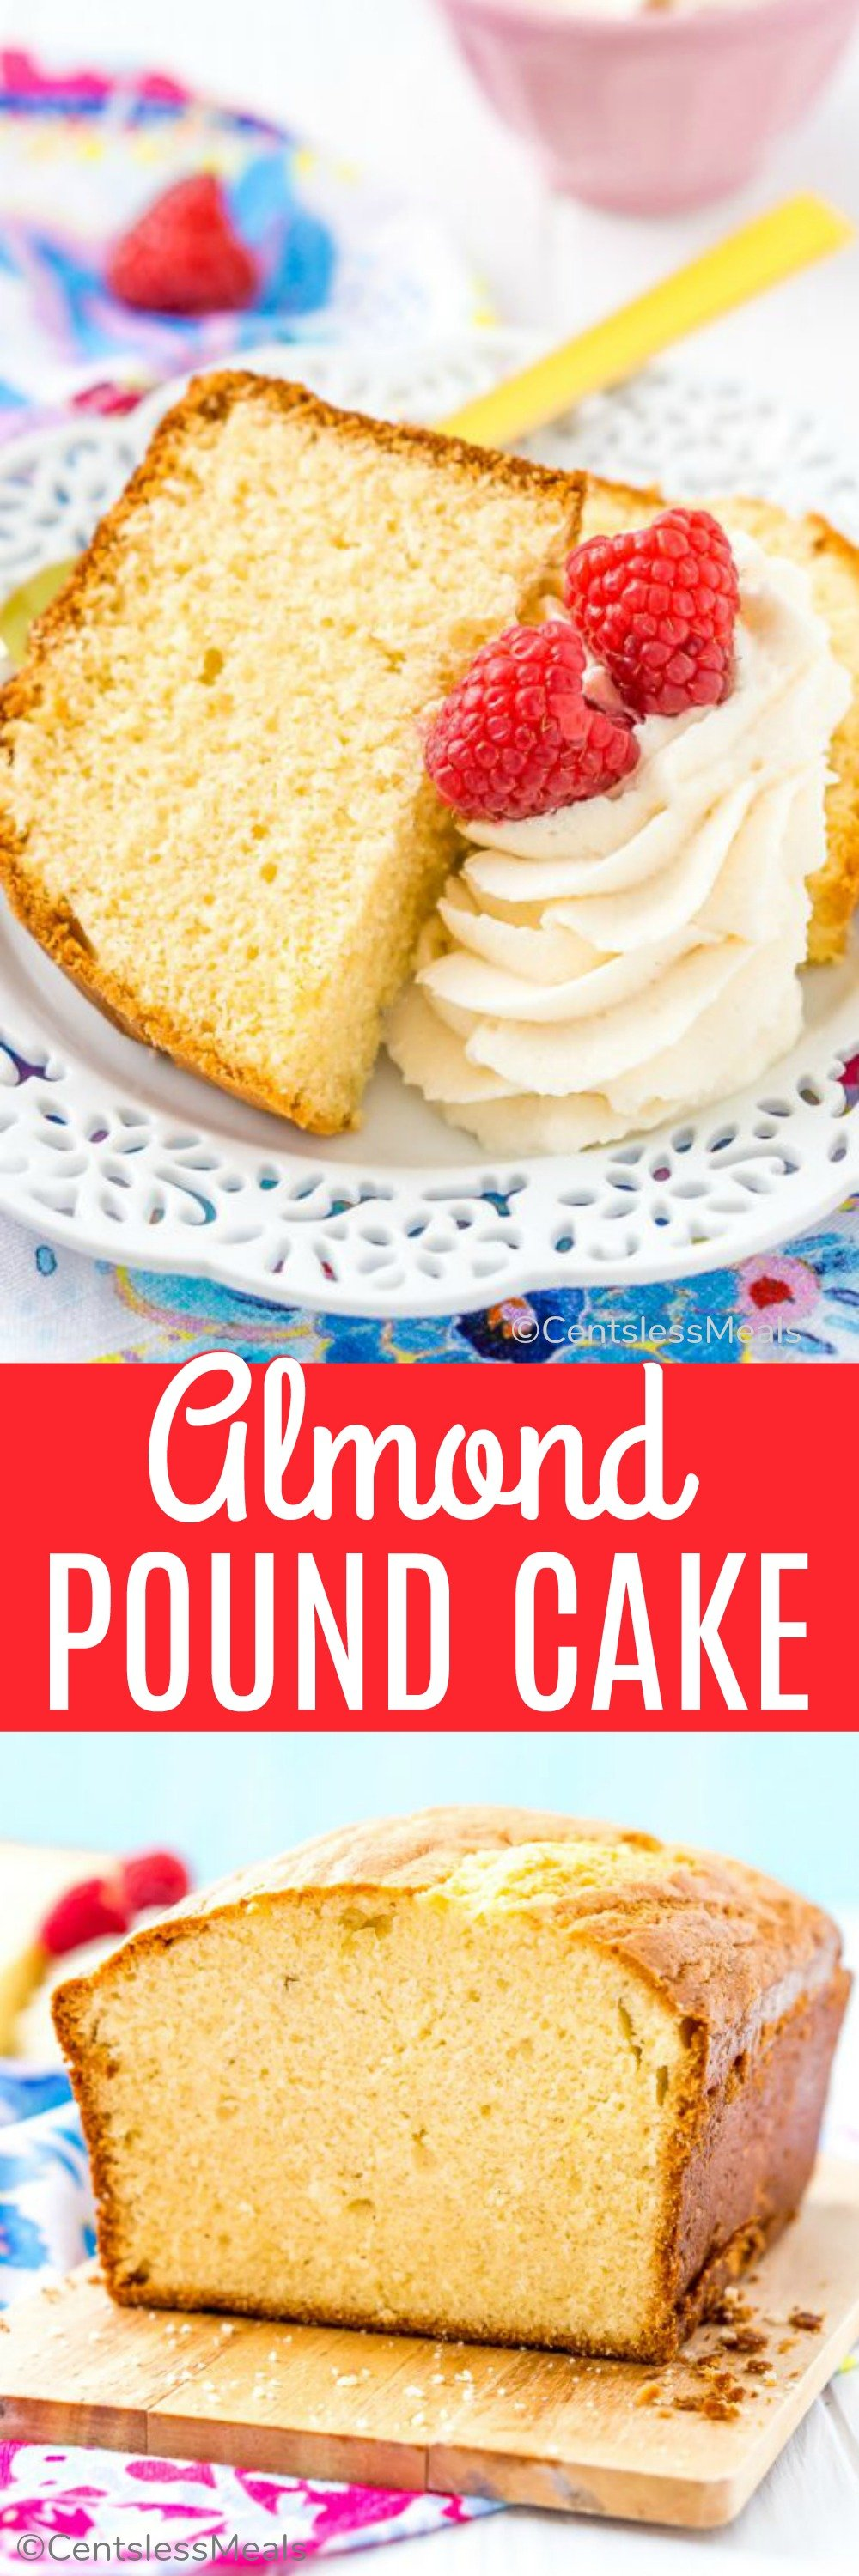 Almond Pound Cake is a classic dessert made with flour, butter, eggs, and sugar that is moist, dense, lightly sweet and totally irresistible! #centslessmeals #easyrecipe #poundcake #easycake #cakerecipes #classicdessert #oldfashioned #moistcake #easyloaf #bestrecipe #withglaze